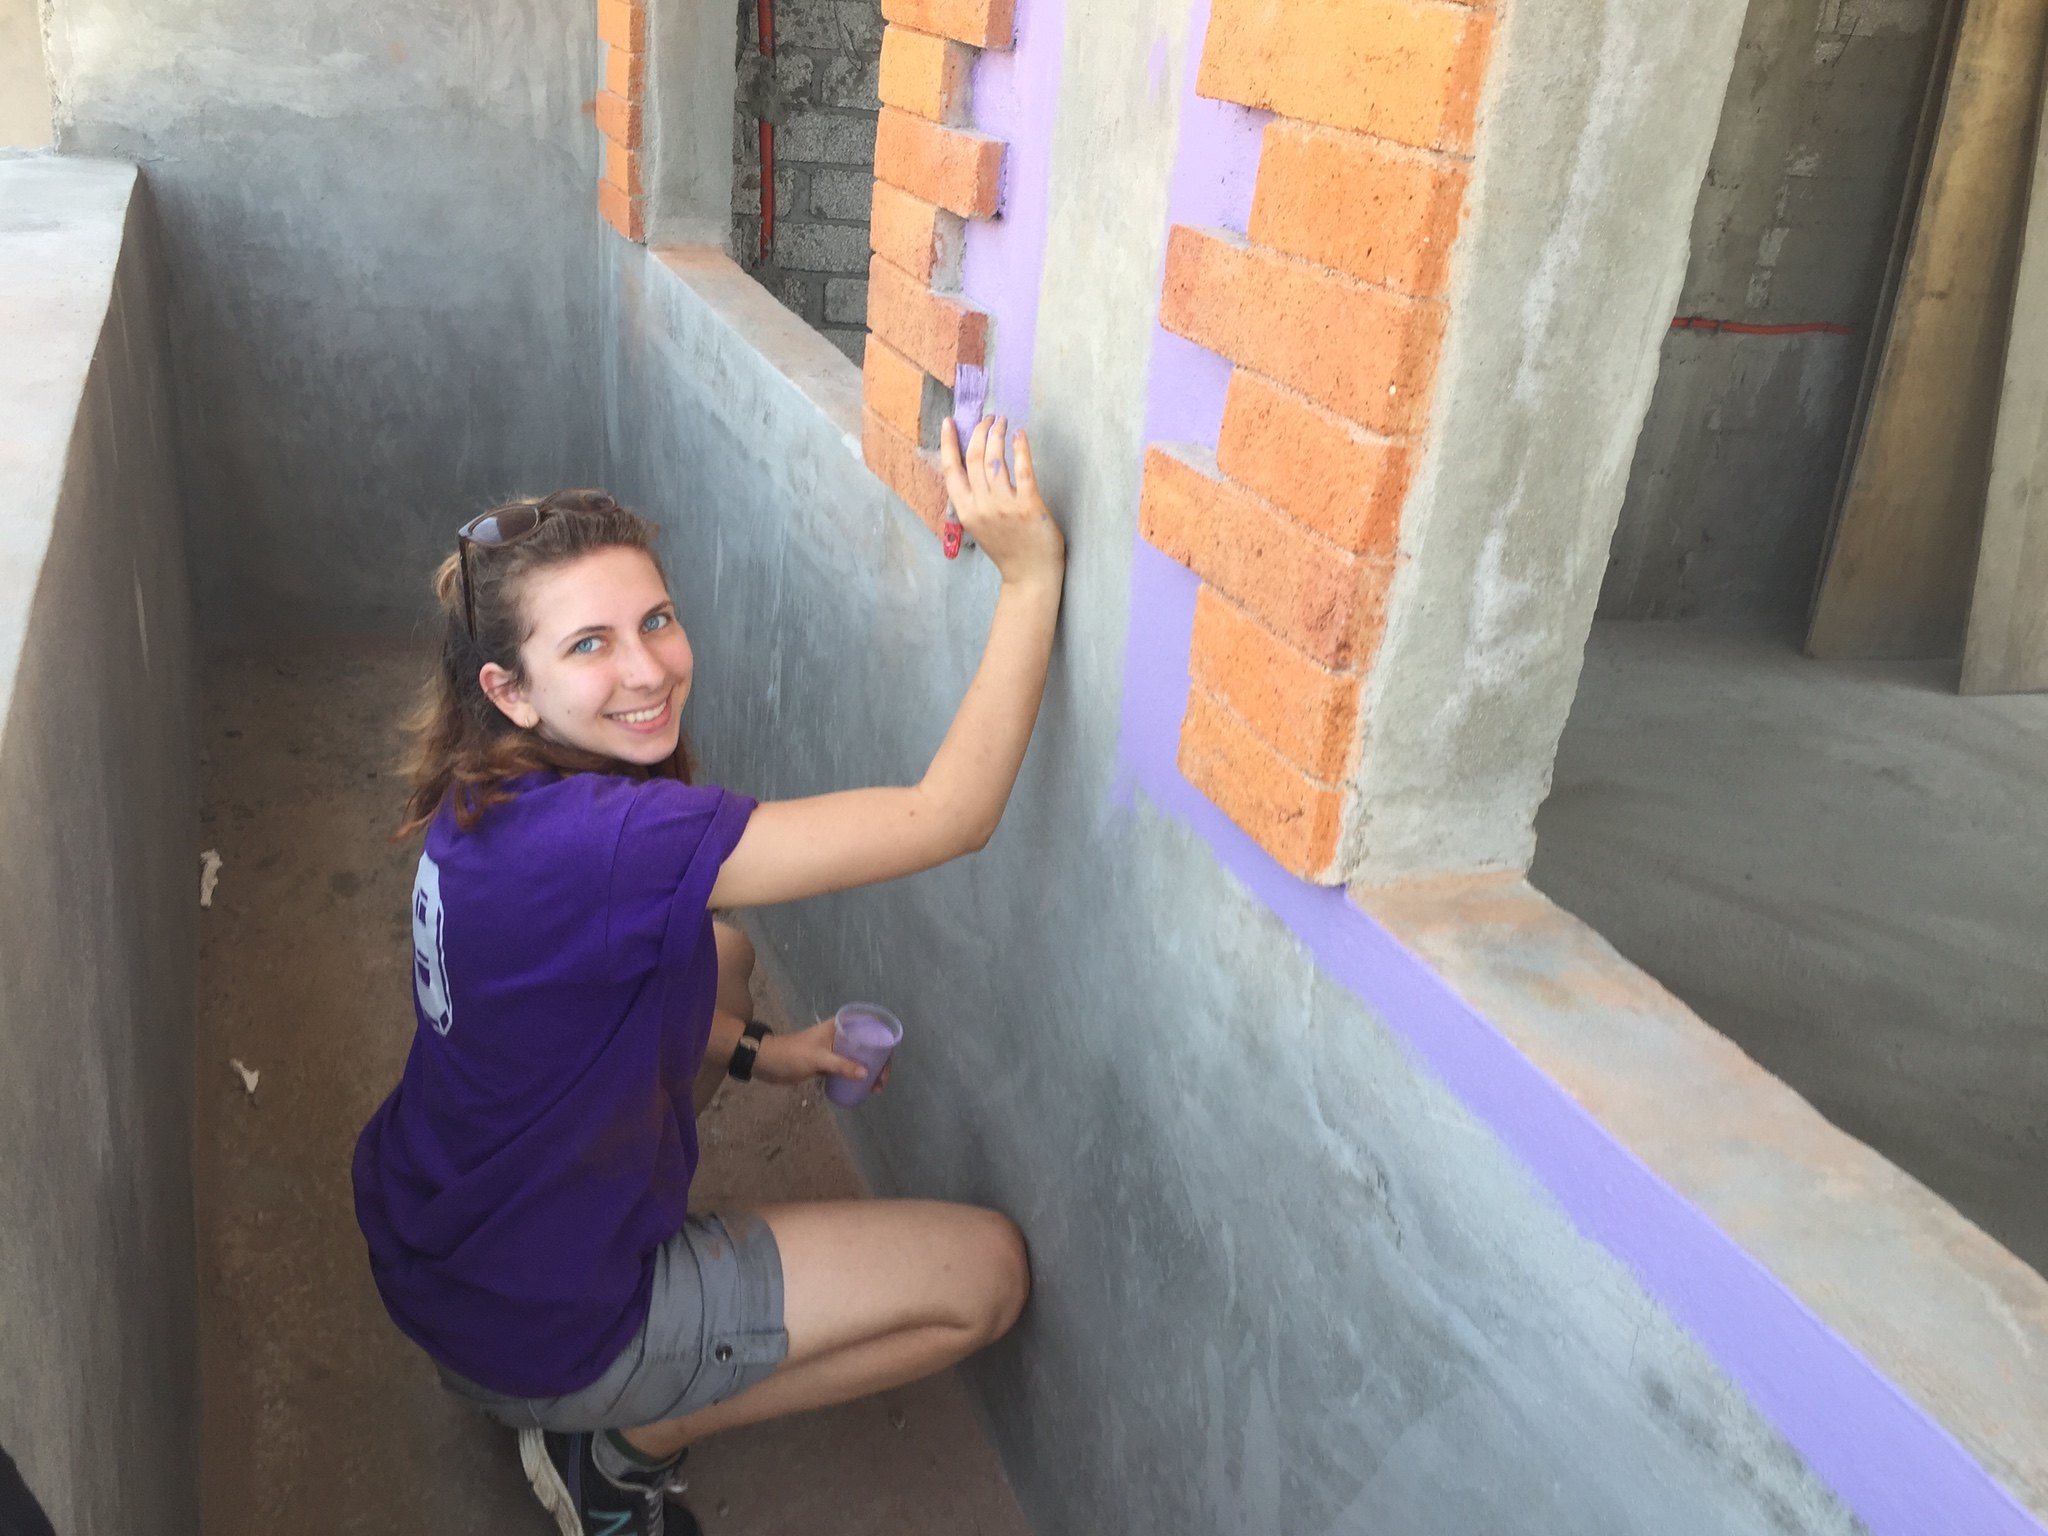 Danielle paints the exterior of a new laundry room at Casa Hogar Simply Smiles.